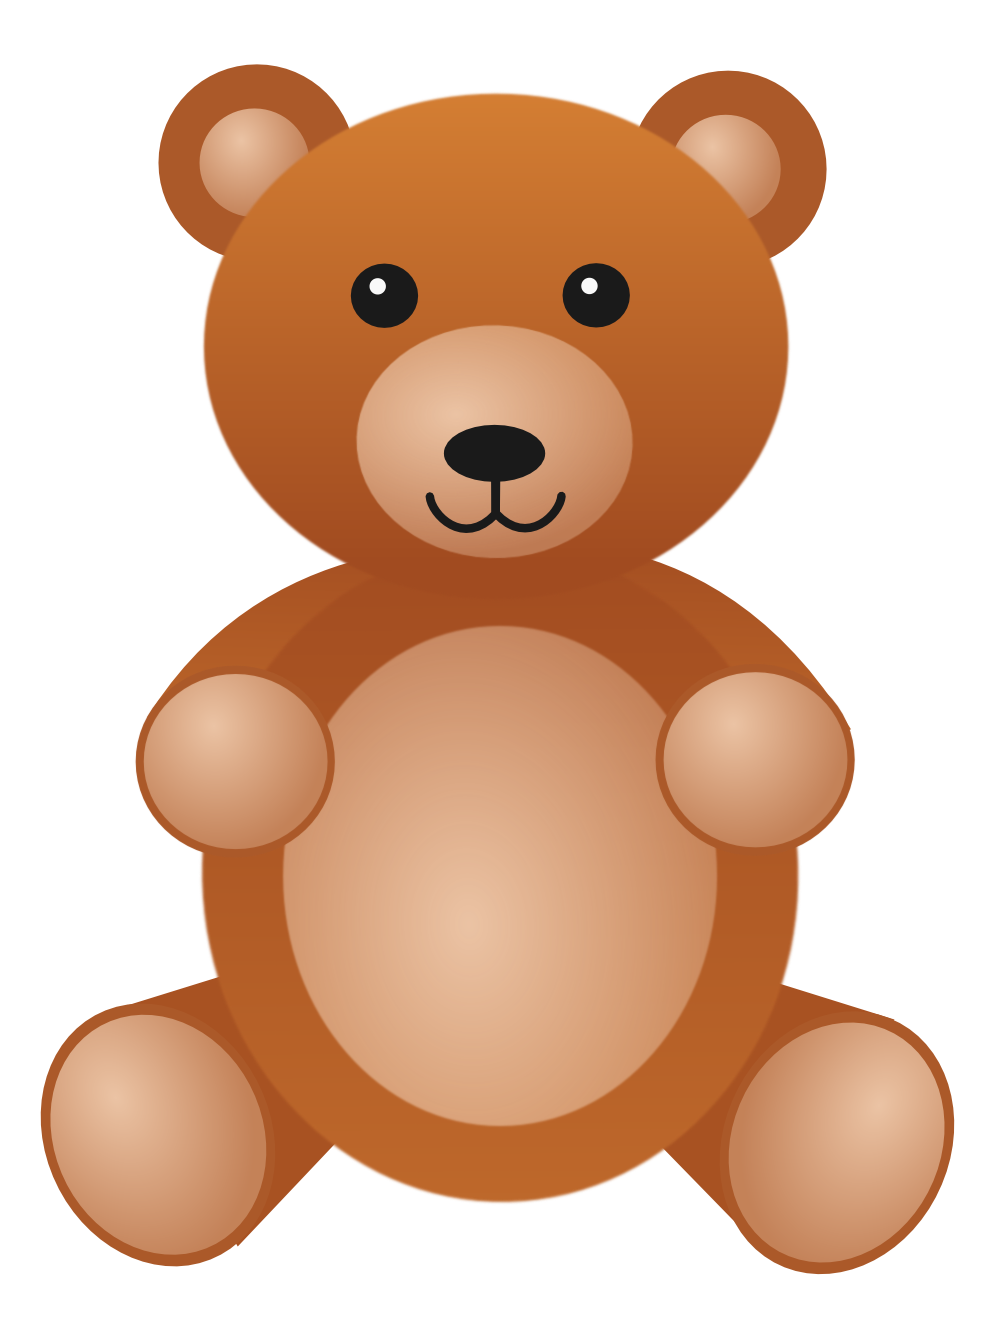 Teddy bear clip art png. Images best free clipart